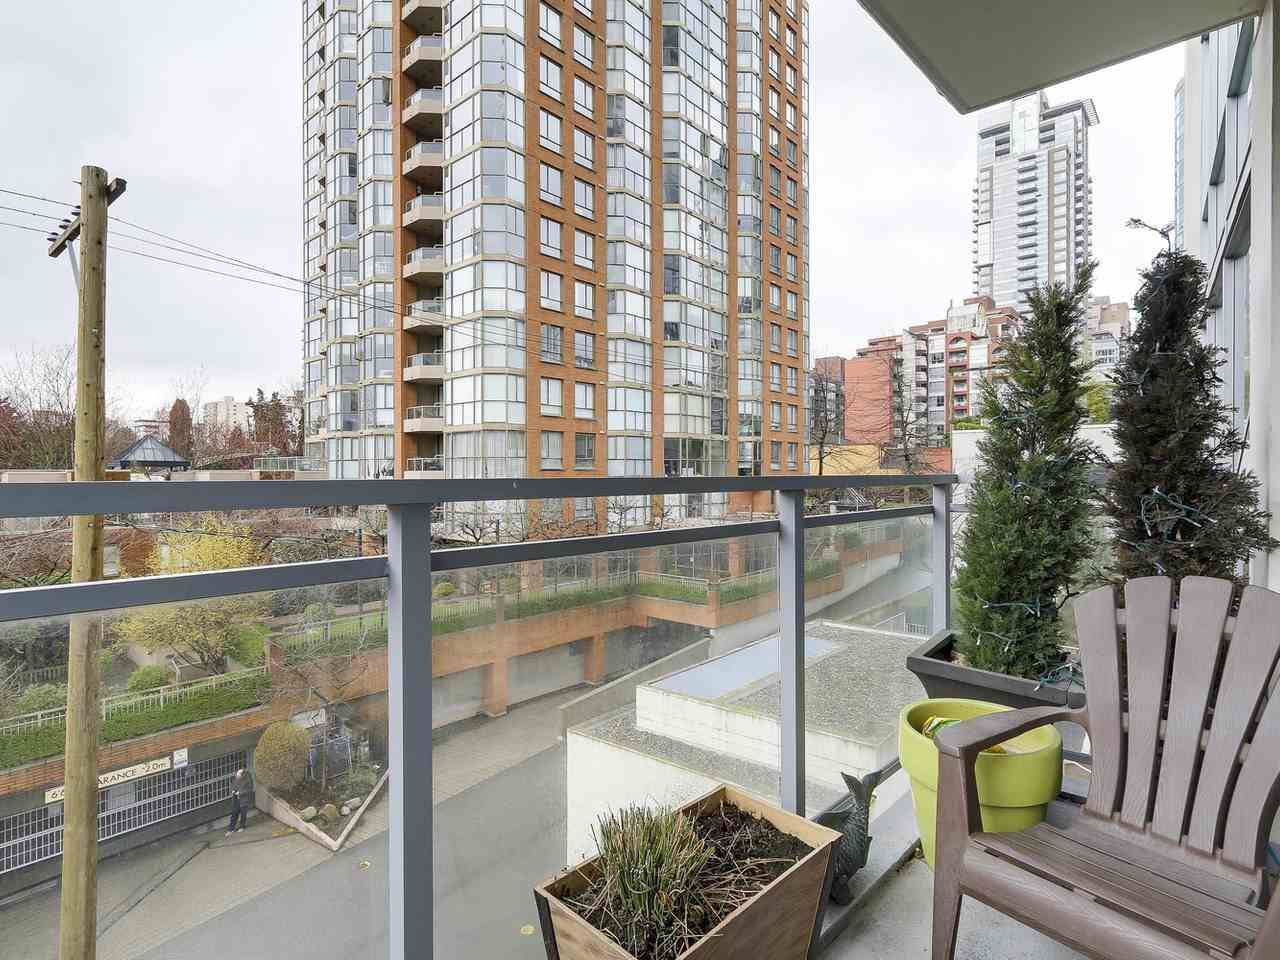 Photo 19: Photos: 401 1455 HOWE STREET in Vancouver: Yaletown Condo for sale (Vancouver West)  : MLS®# R2145939